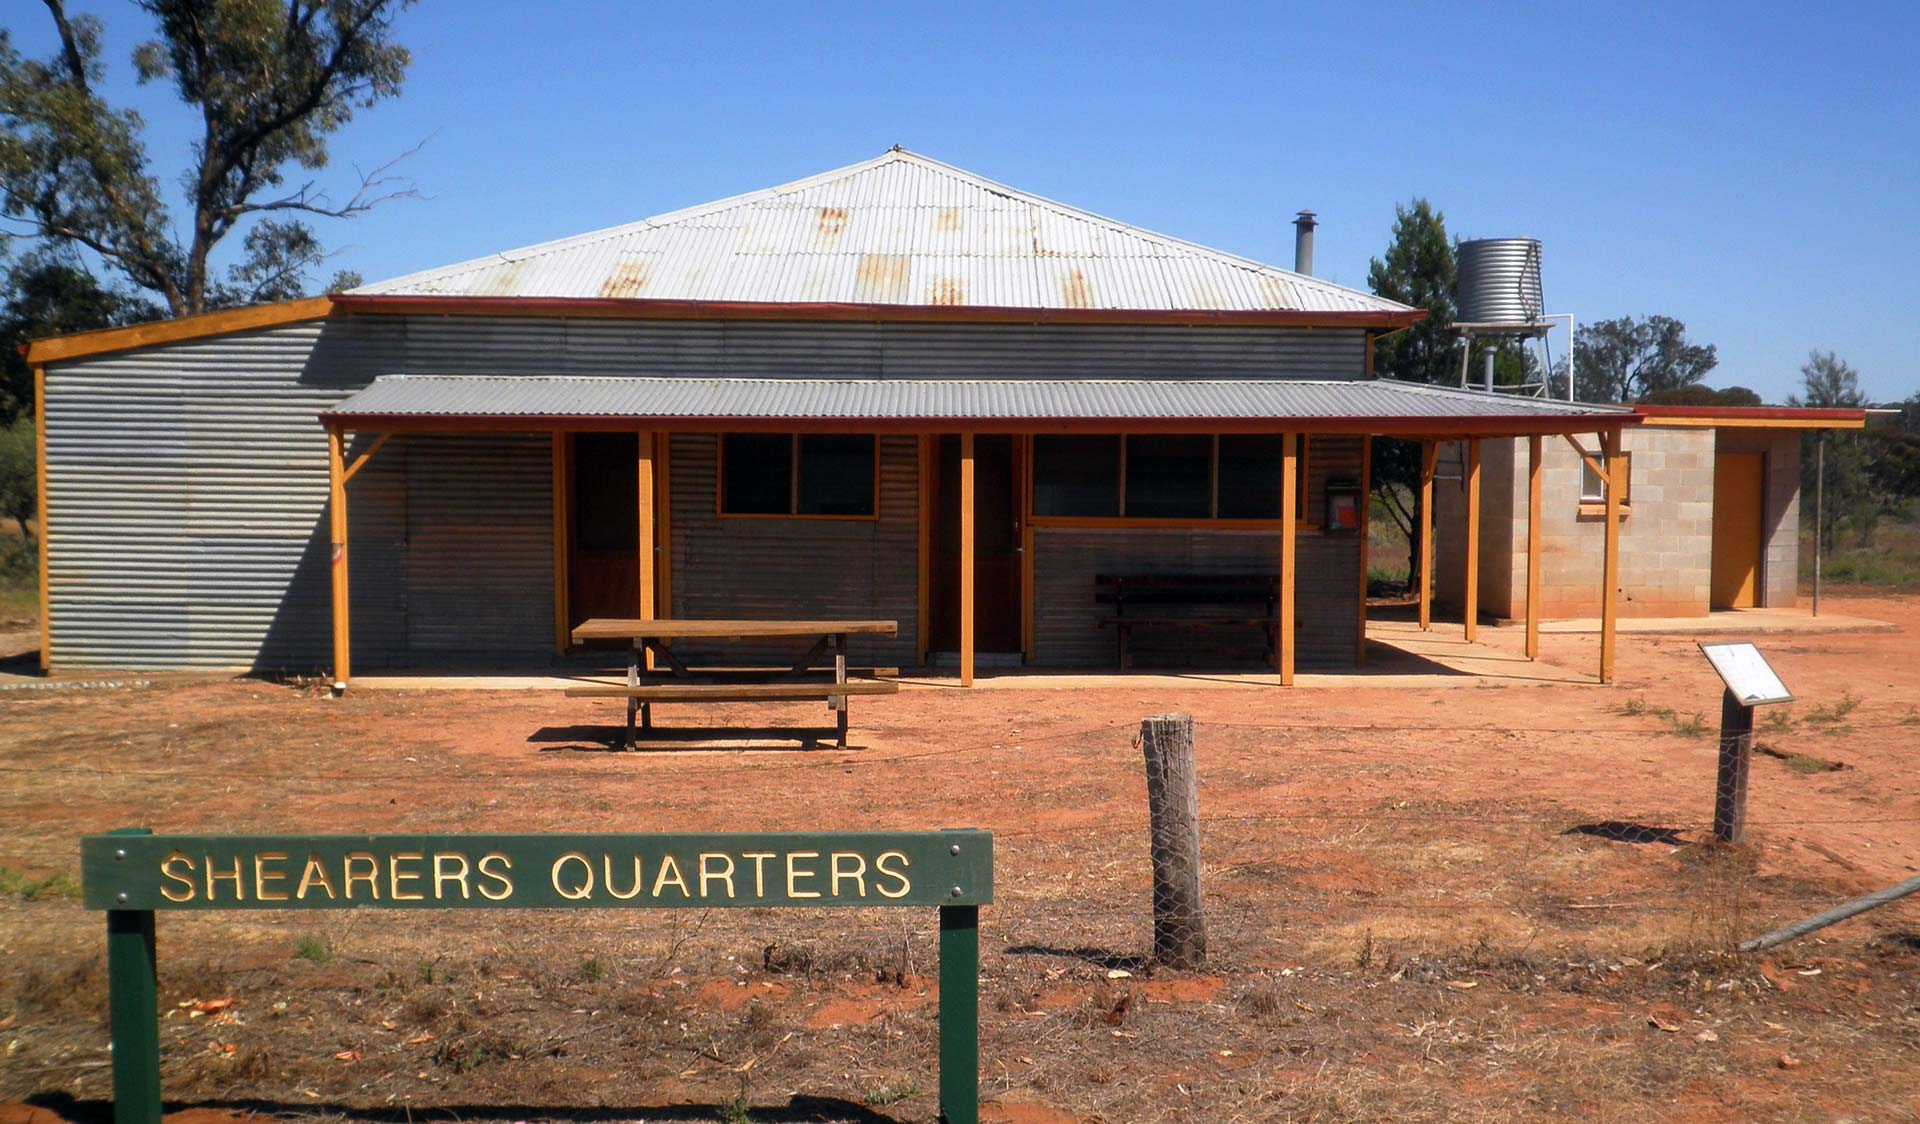 Shearers Quarters - an historic self-contained four bedroom cottage in the middle of the Murray Sunset National Park.